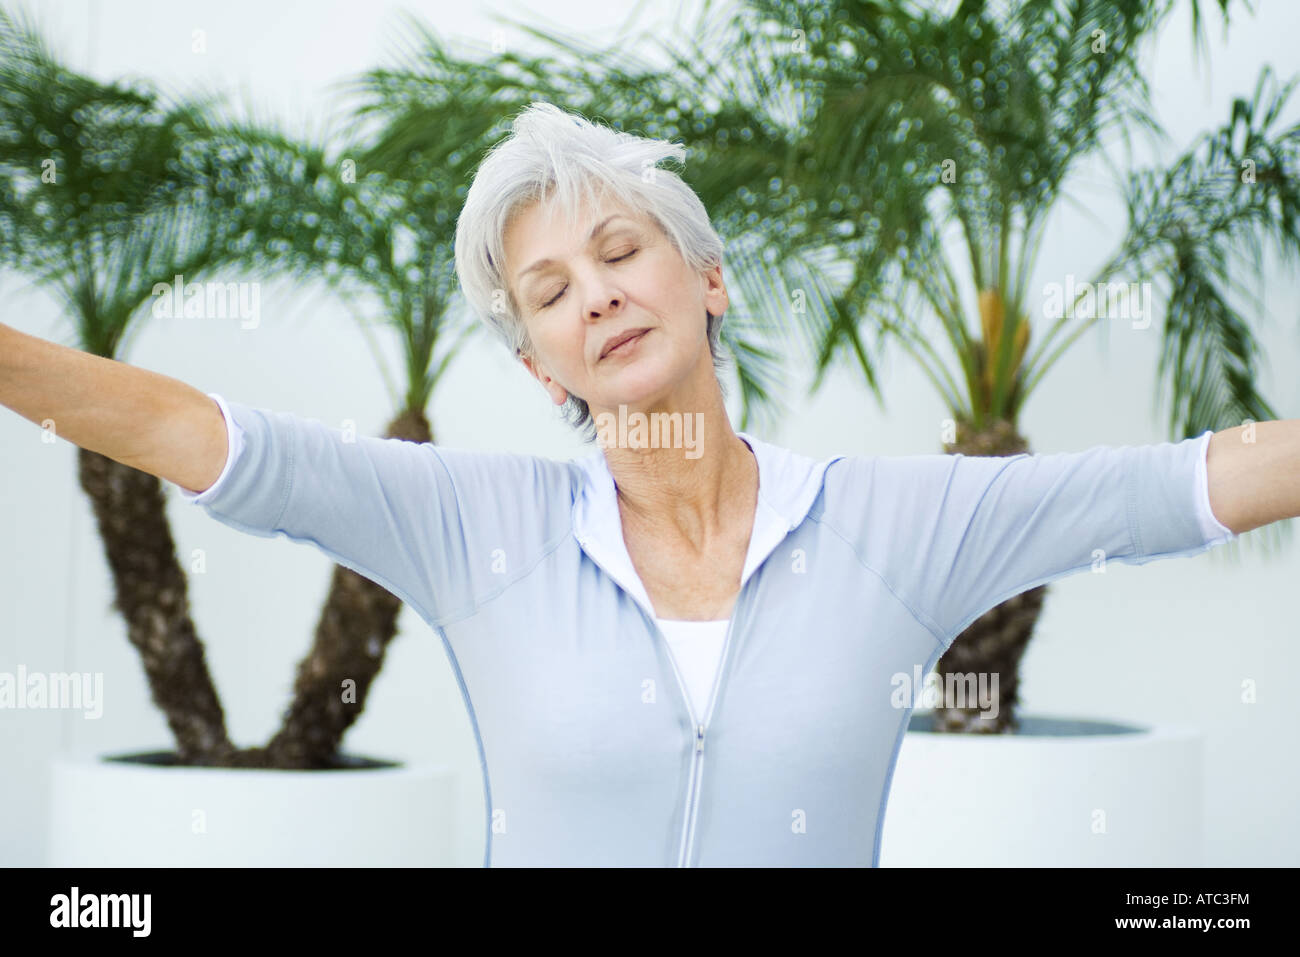 Senior woman with arms outstretched, head tilted, eyes closed - Stock Image